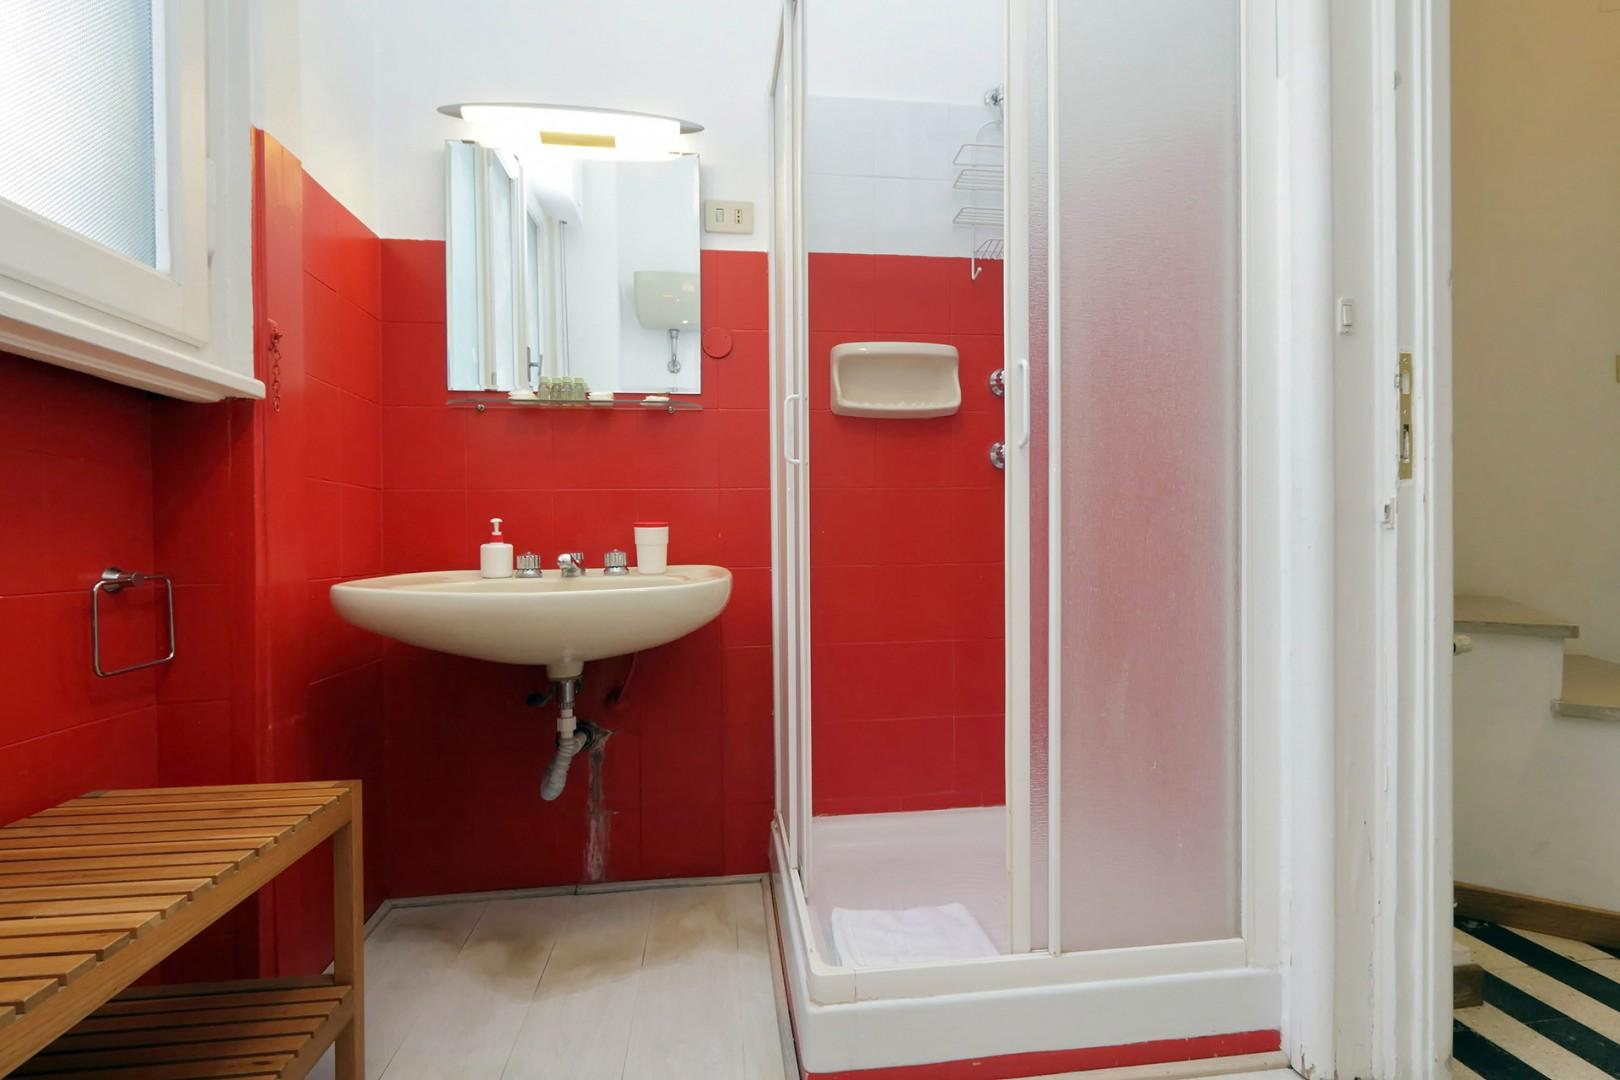 Bathroom off the entry foyer. It has an enclosed shower.